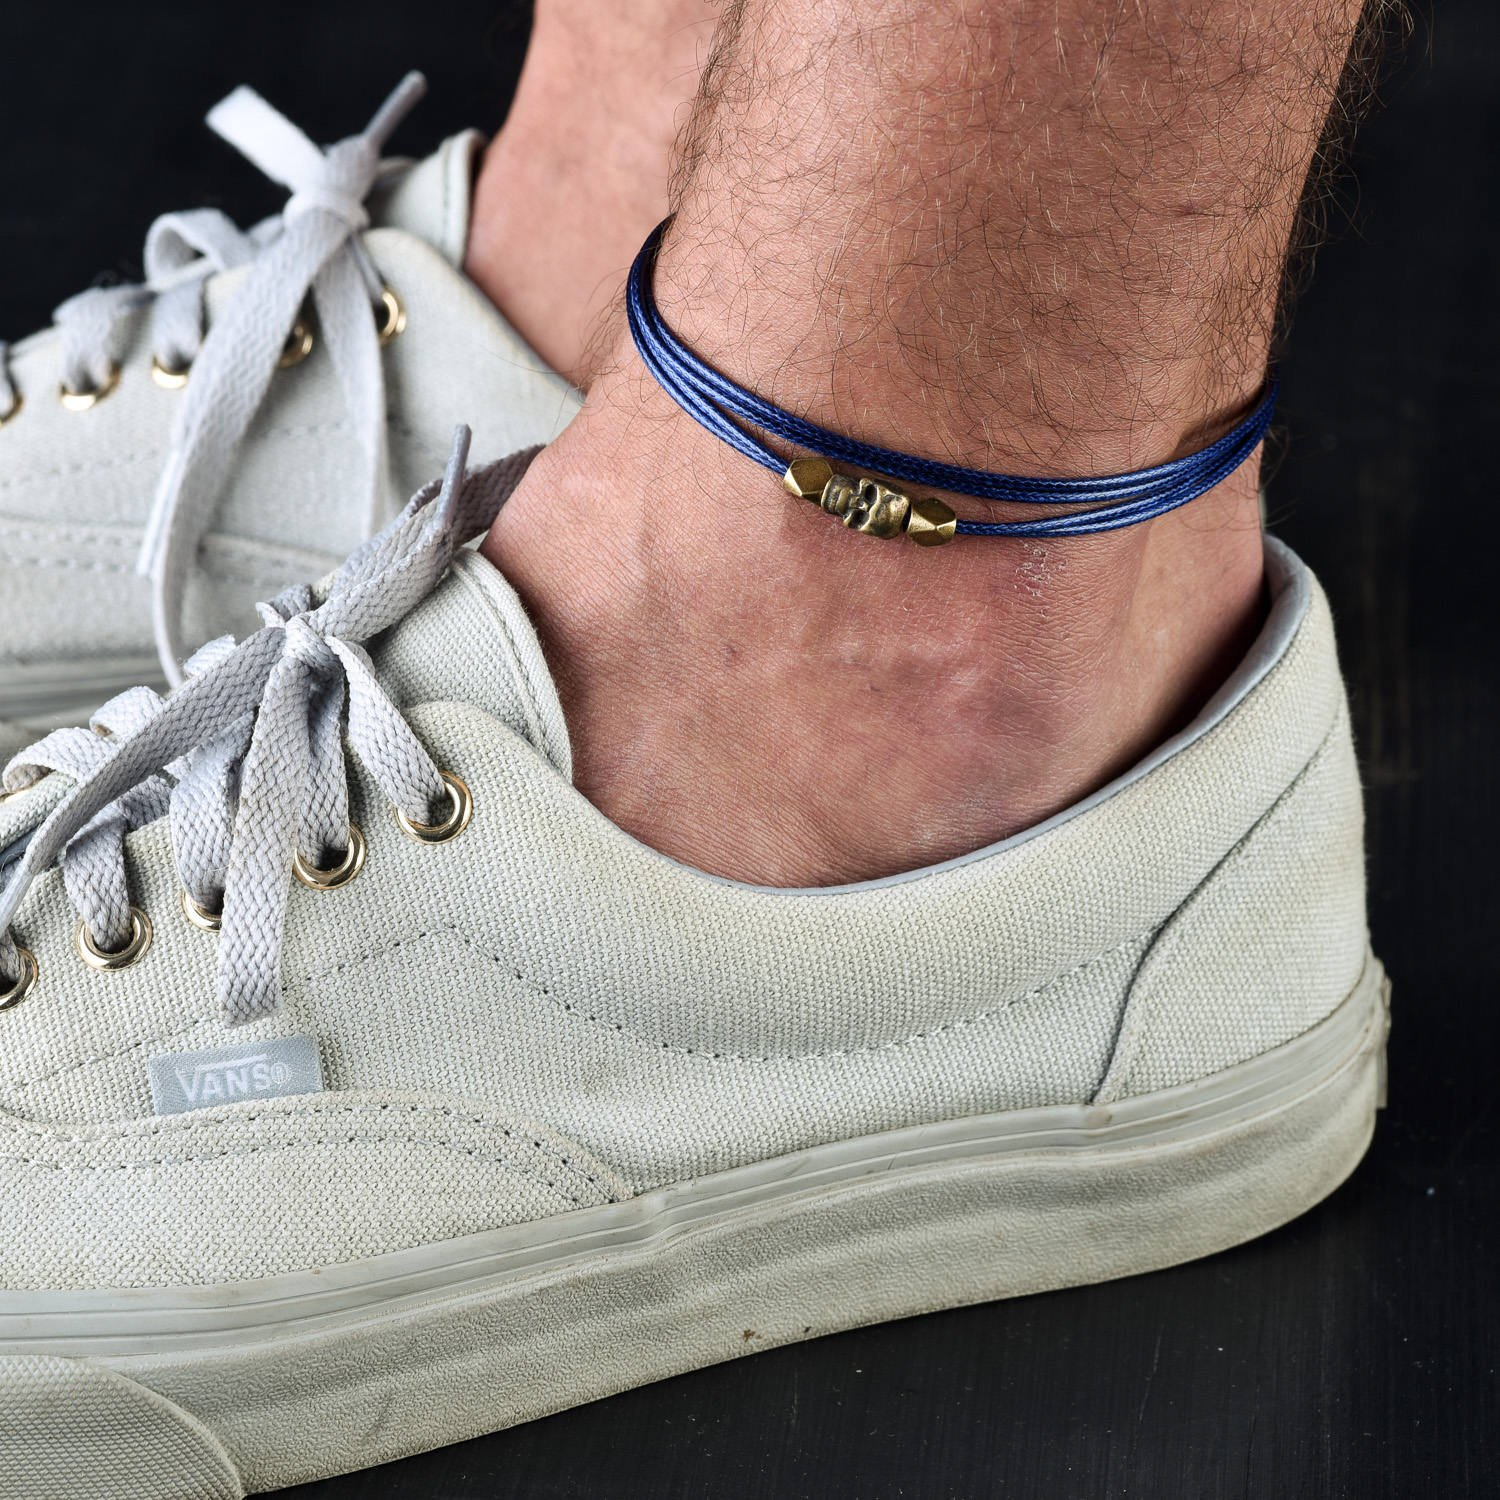 Men's Anklet - Men's Ankle bracelet - Anklet for Men - Ankle Bracelet For Men - Summer Jewelry